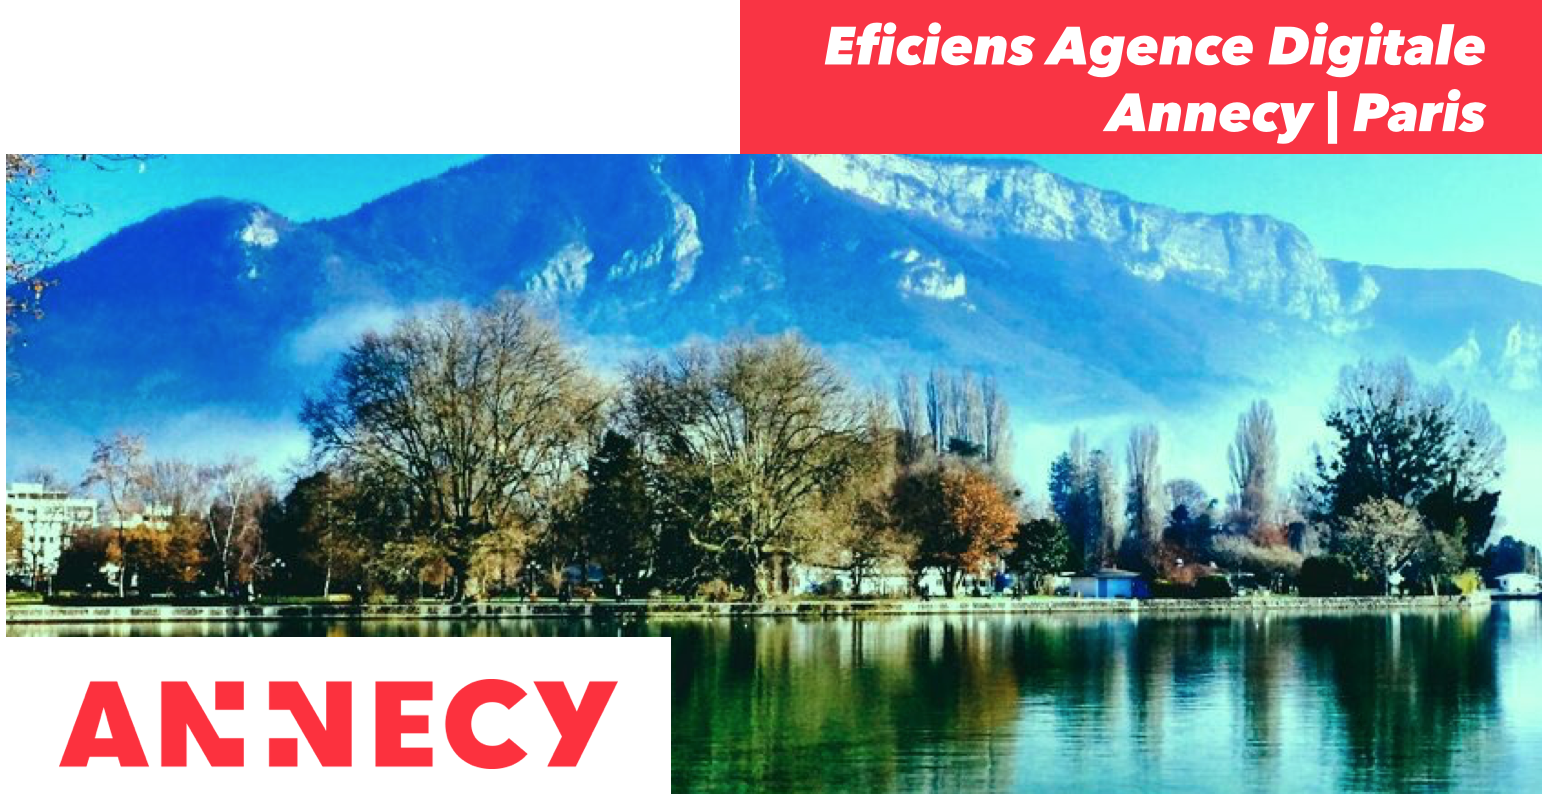 agence digitale annecy